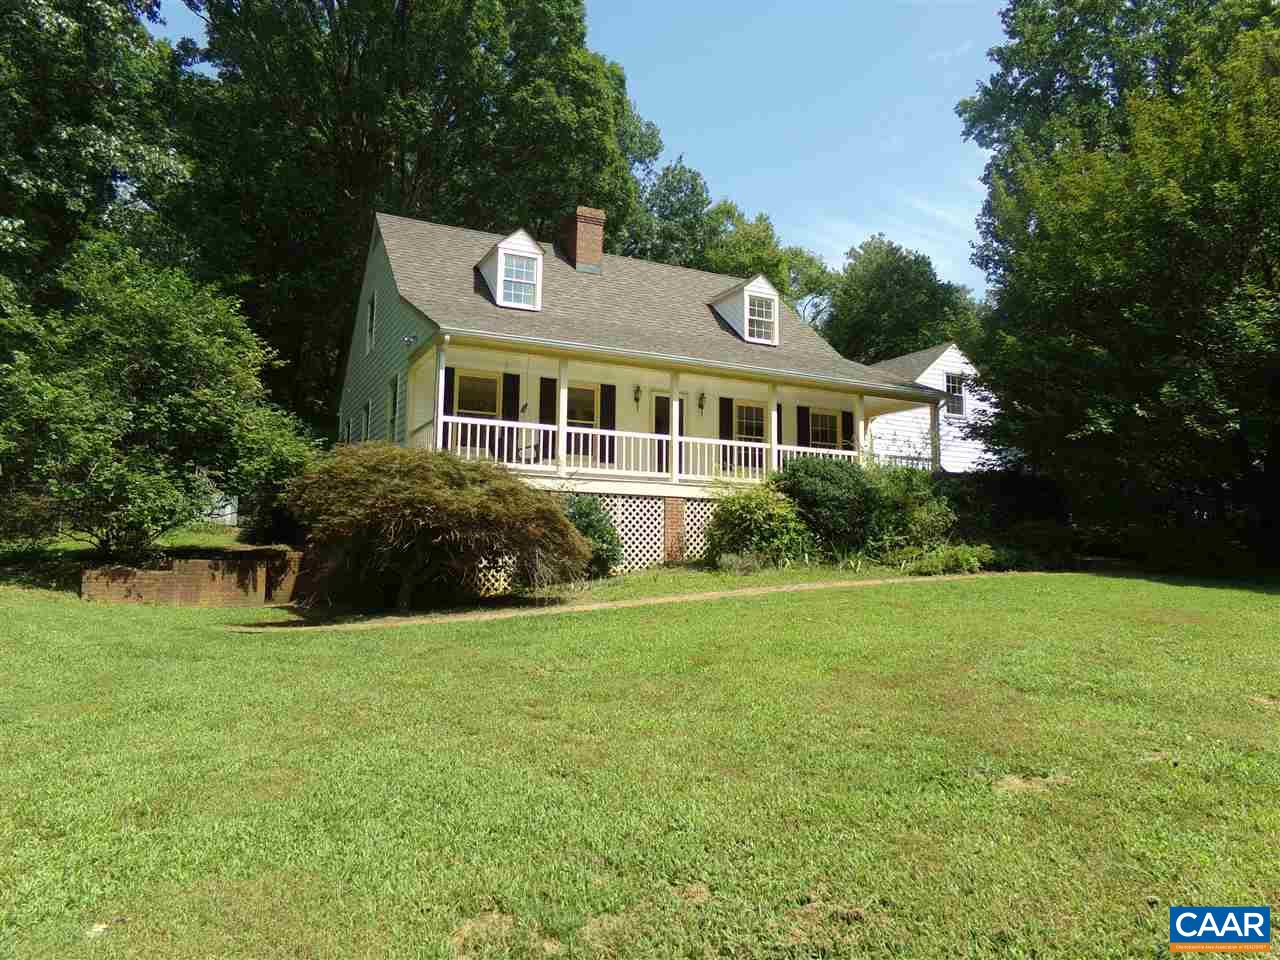 $20K REDEC/CC ALLOWANCE PD WITH SATISFACTORY CONTRACT.BEAUTIFUL BUCK MOUNTAIN SUBDIVISION HOME IN EXCELLENT CONDITION WITH EXTERIOR FRESHLY PAINTED AND MOST INTERIOR FRESHLY PAINTED, REFINISHED HARDWOOD FLOORS IN LR, KIT & DA. NICE FULL LENGTH COVERED PORCH,  MAIN LEVEL MASTER  BEDROOM SUITE WITH WHIRLPOOL TUB AND SEPARATE SHOWER, SPACIOUS LIVING ROOM WITH NATURAL GAS FIREPLACE, LARGE DINING ROOM,  SPACIOUS KITCHEN W/KITCHEN ISLAND & LG DINING AREA &   SOAPSTONE COUNTER TOPS, FINISHED MULTI PURPOSE ROOM WITH SEPARATE HEAT PUMP H&C (COULD EASILY BE 4TH BR). LG 2 CAR GARAGE & FULL UNFINISHED BSMT.  EXTERIOR GROUNDS PARTIALLY FENCED WITH MUCH LANDSCAPING. EXCELLENT PRIVACY WITH NICE WINTER VIEWS. GENRAC 10K BACKUP GENERATOR INCLUDED.